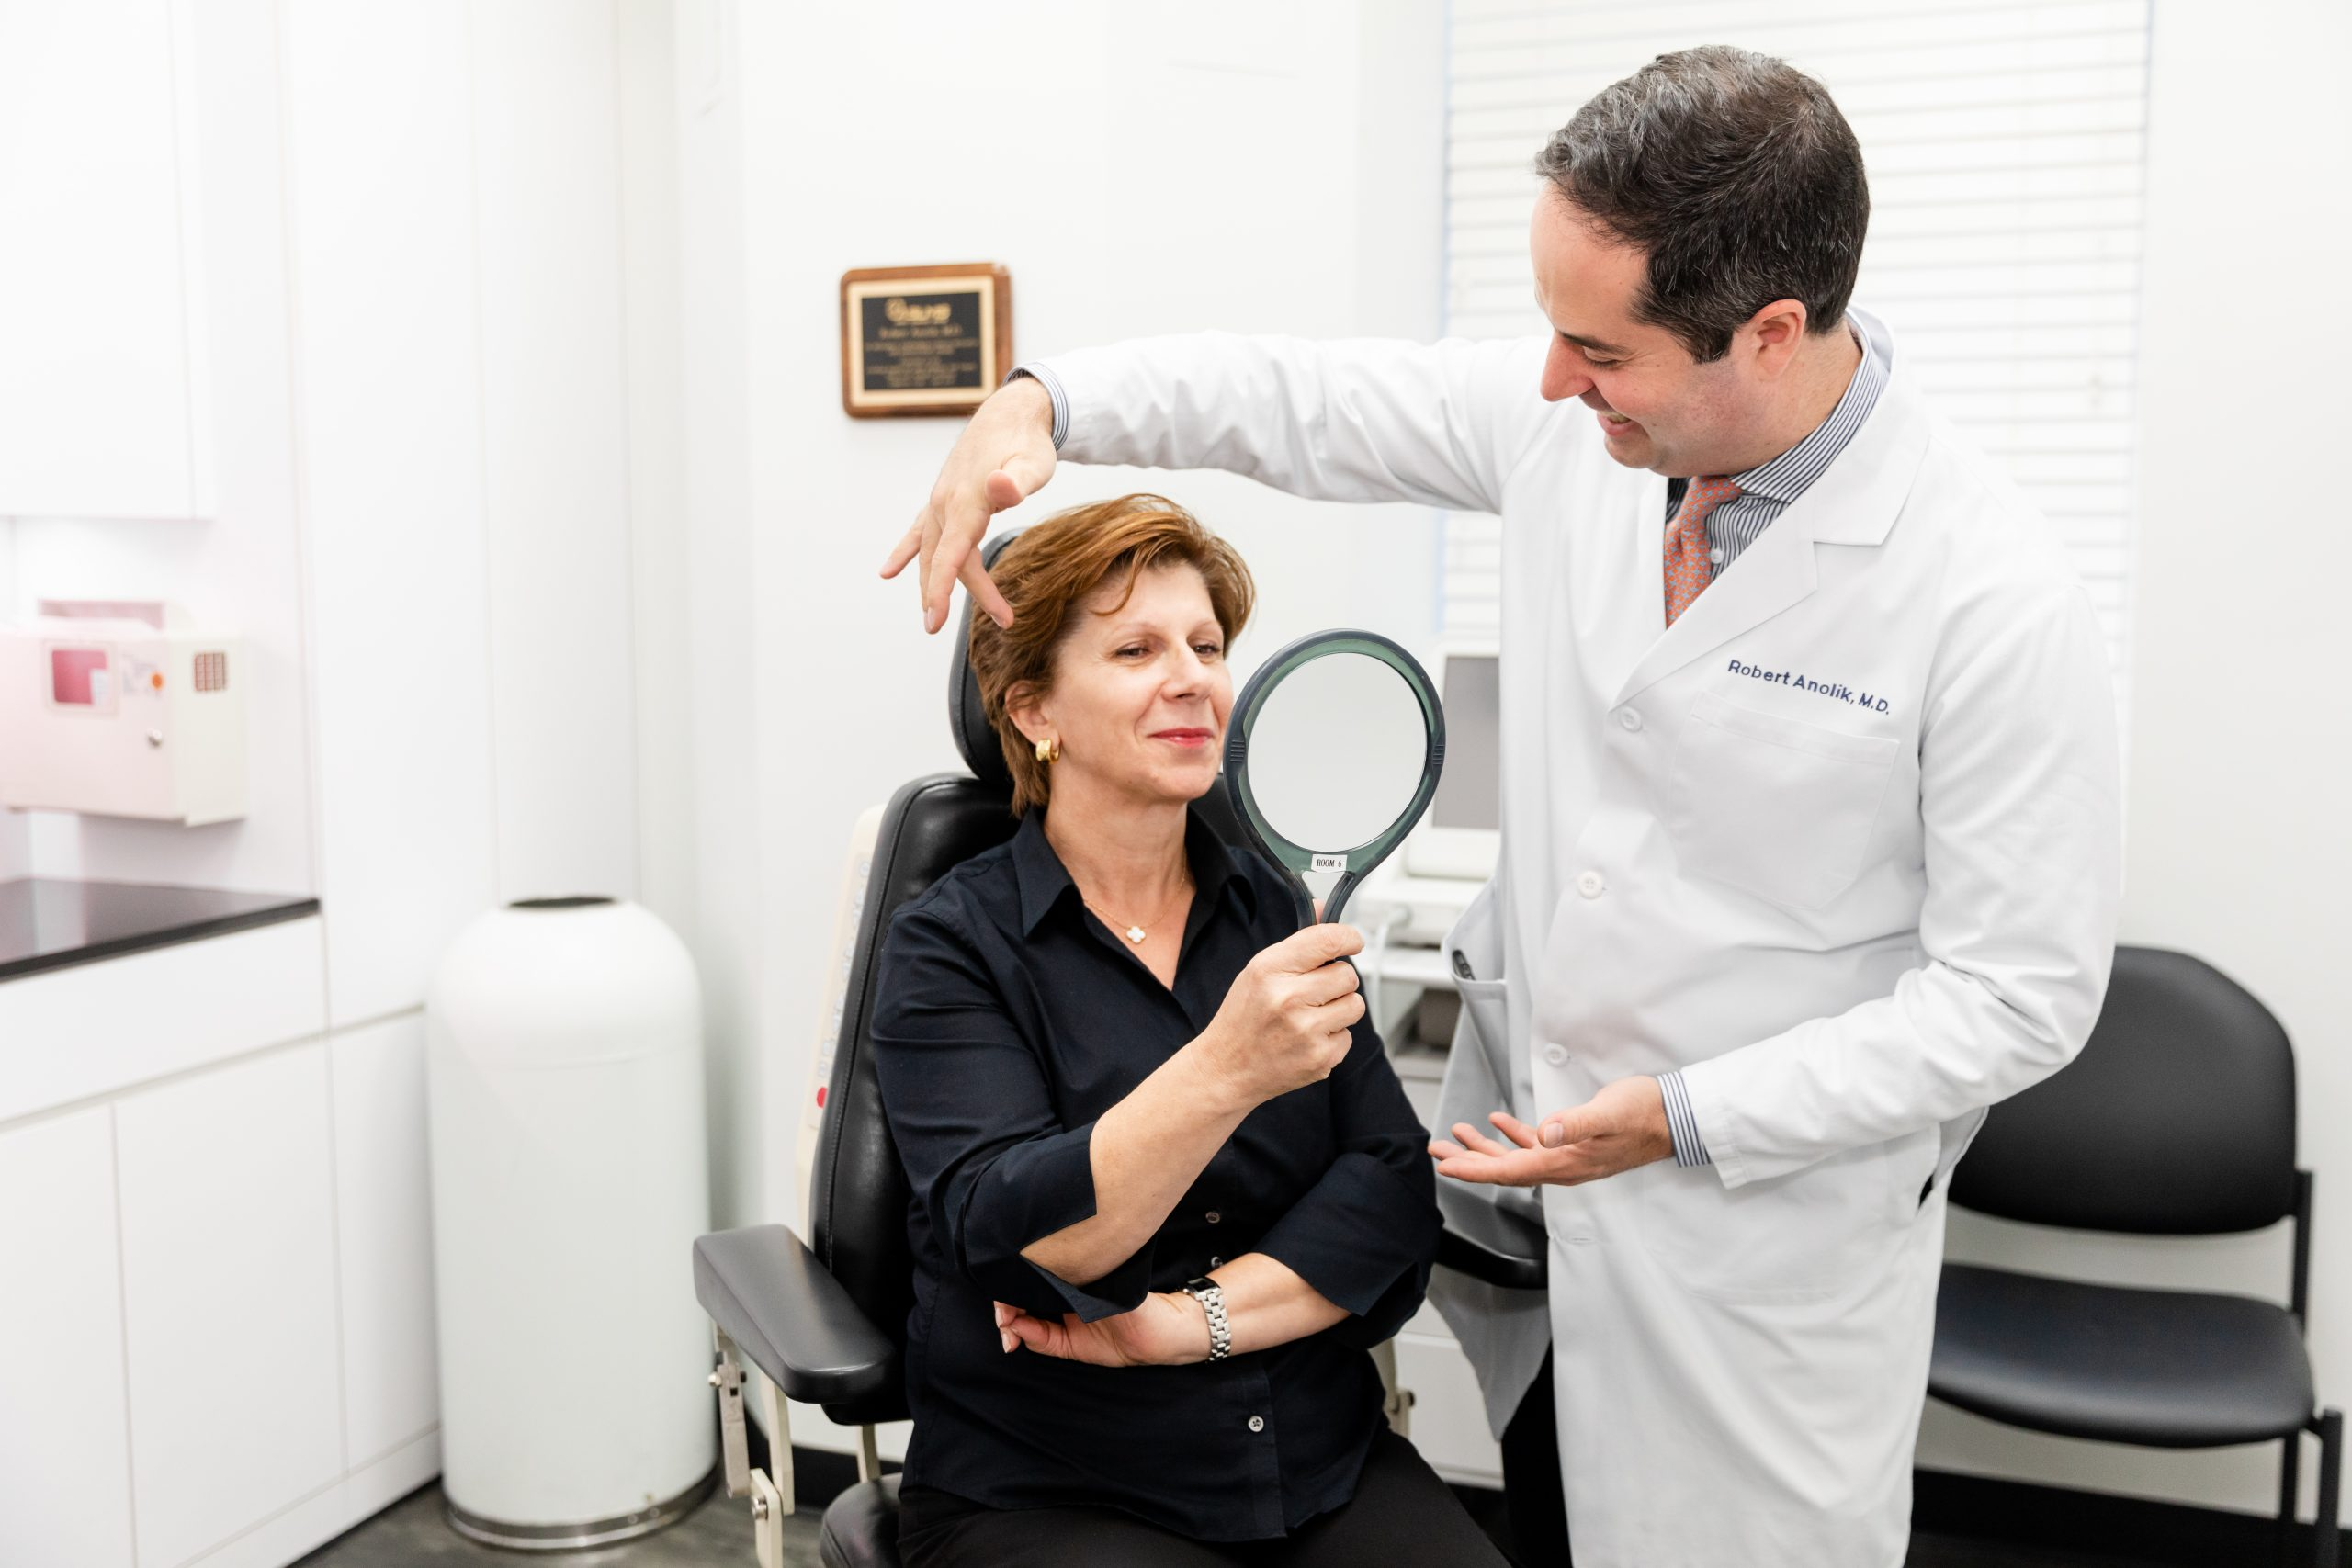 Utilizing radiofrequency energy, Thermage® CPT effectively smooths, tightens, and contours skin for an overall younger appearance.